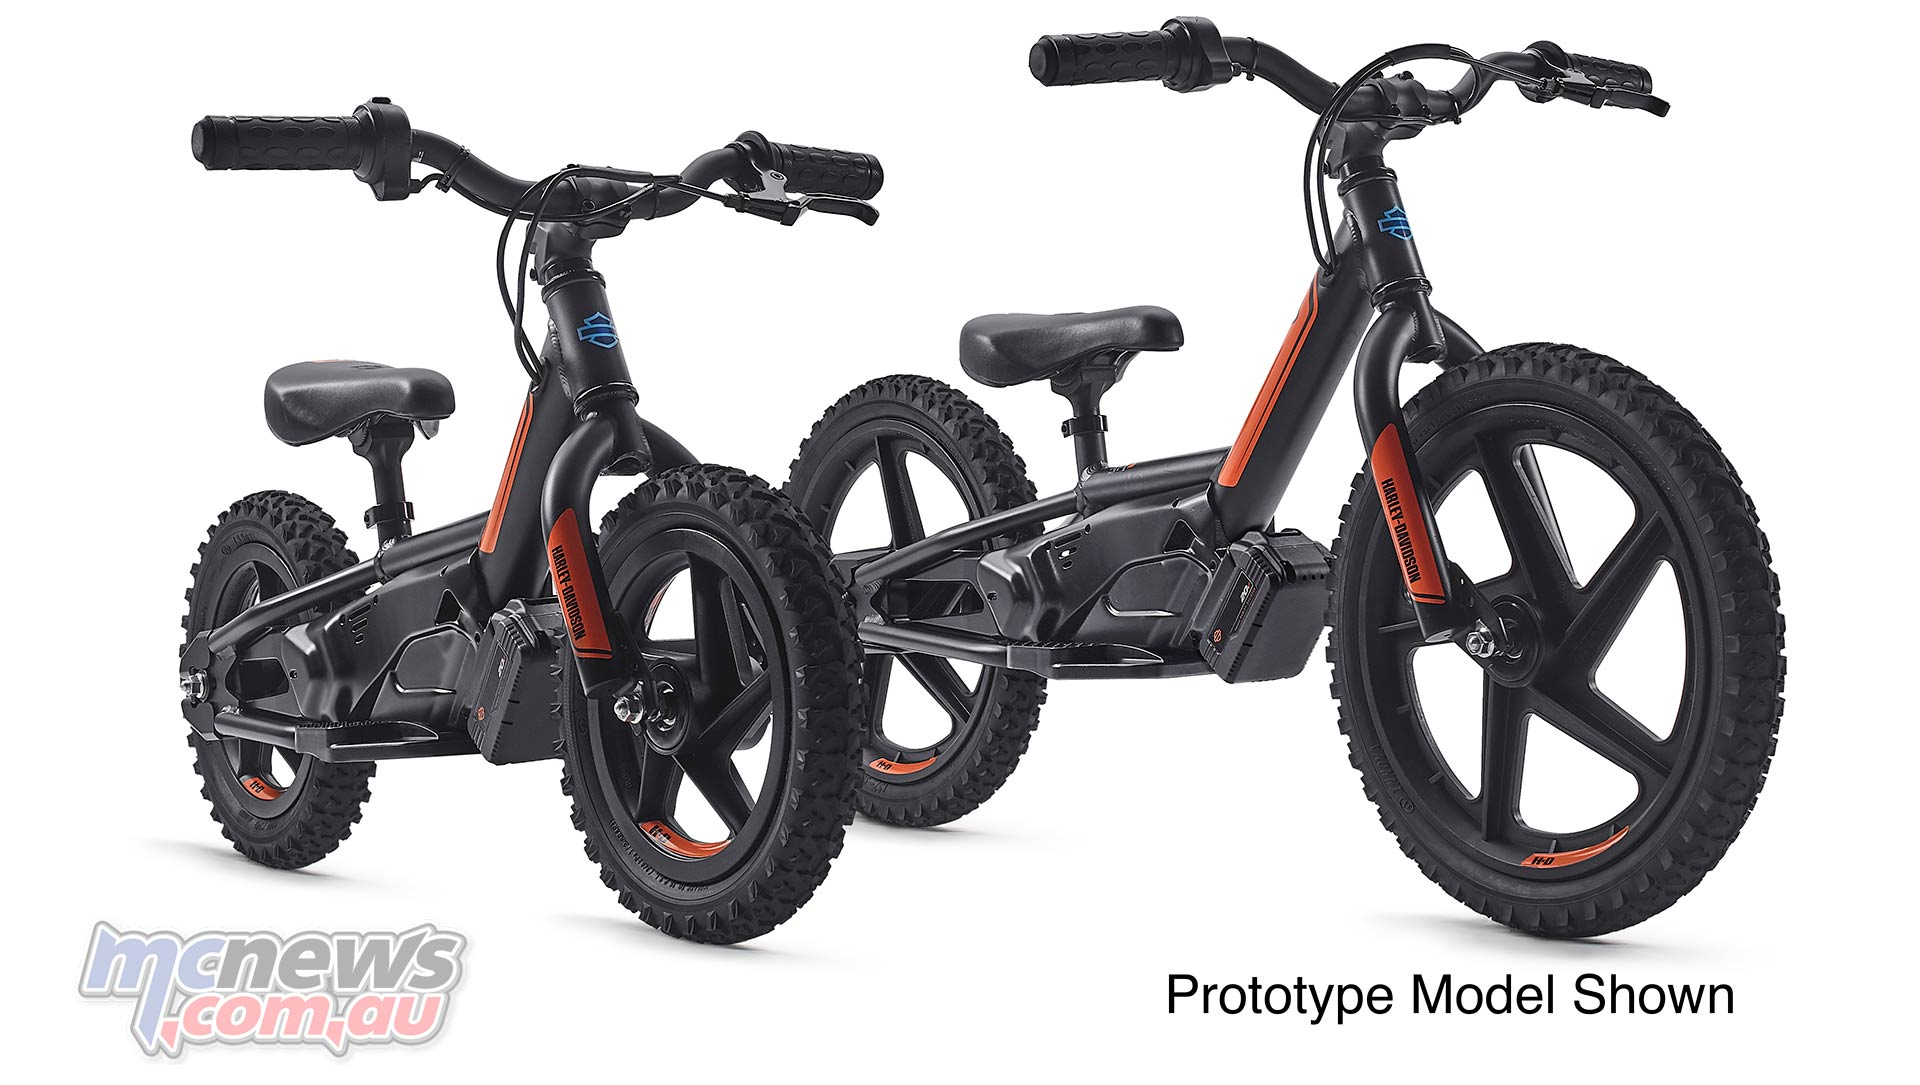 Harley aim to get 'em young with electric kids bikes